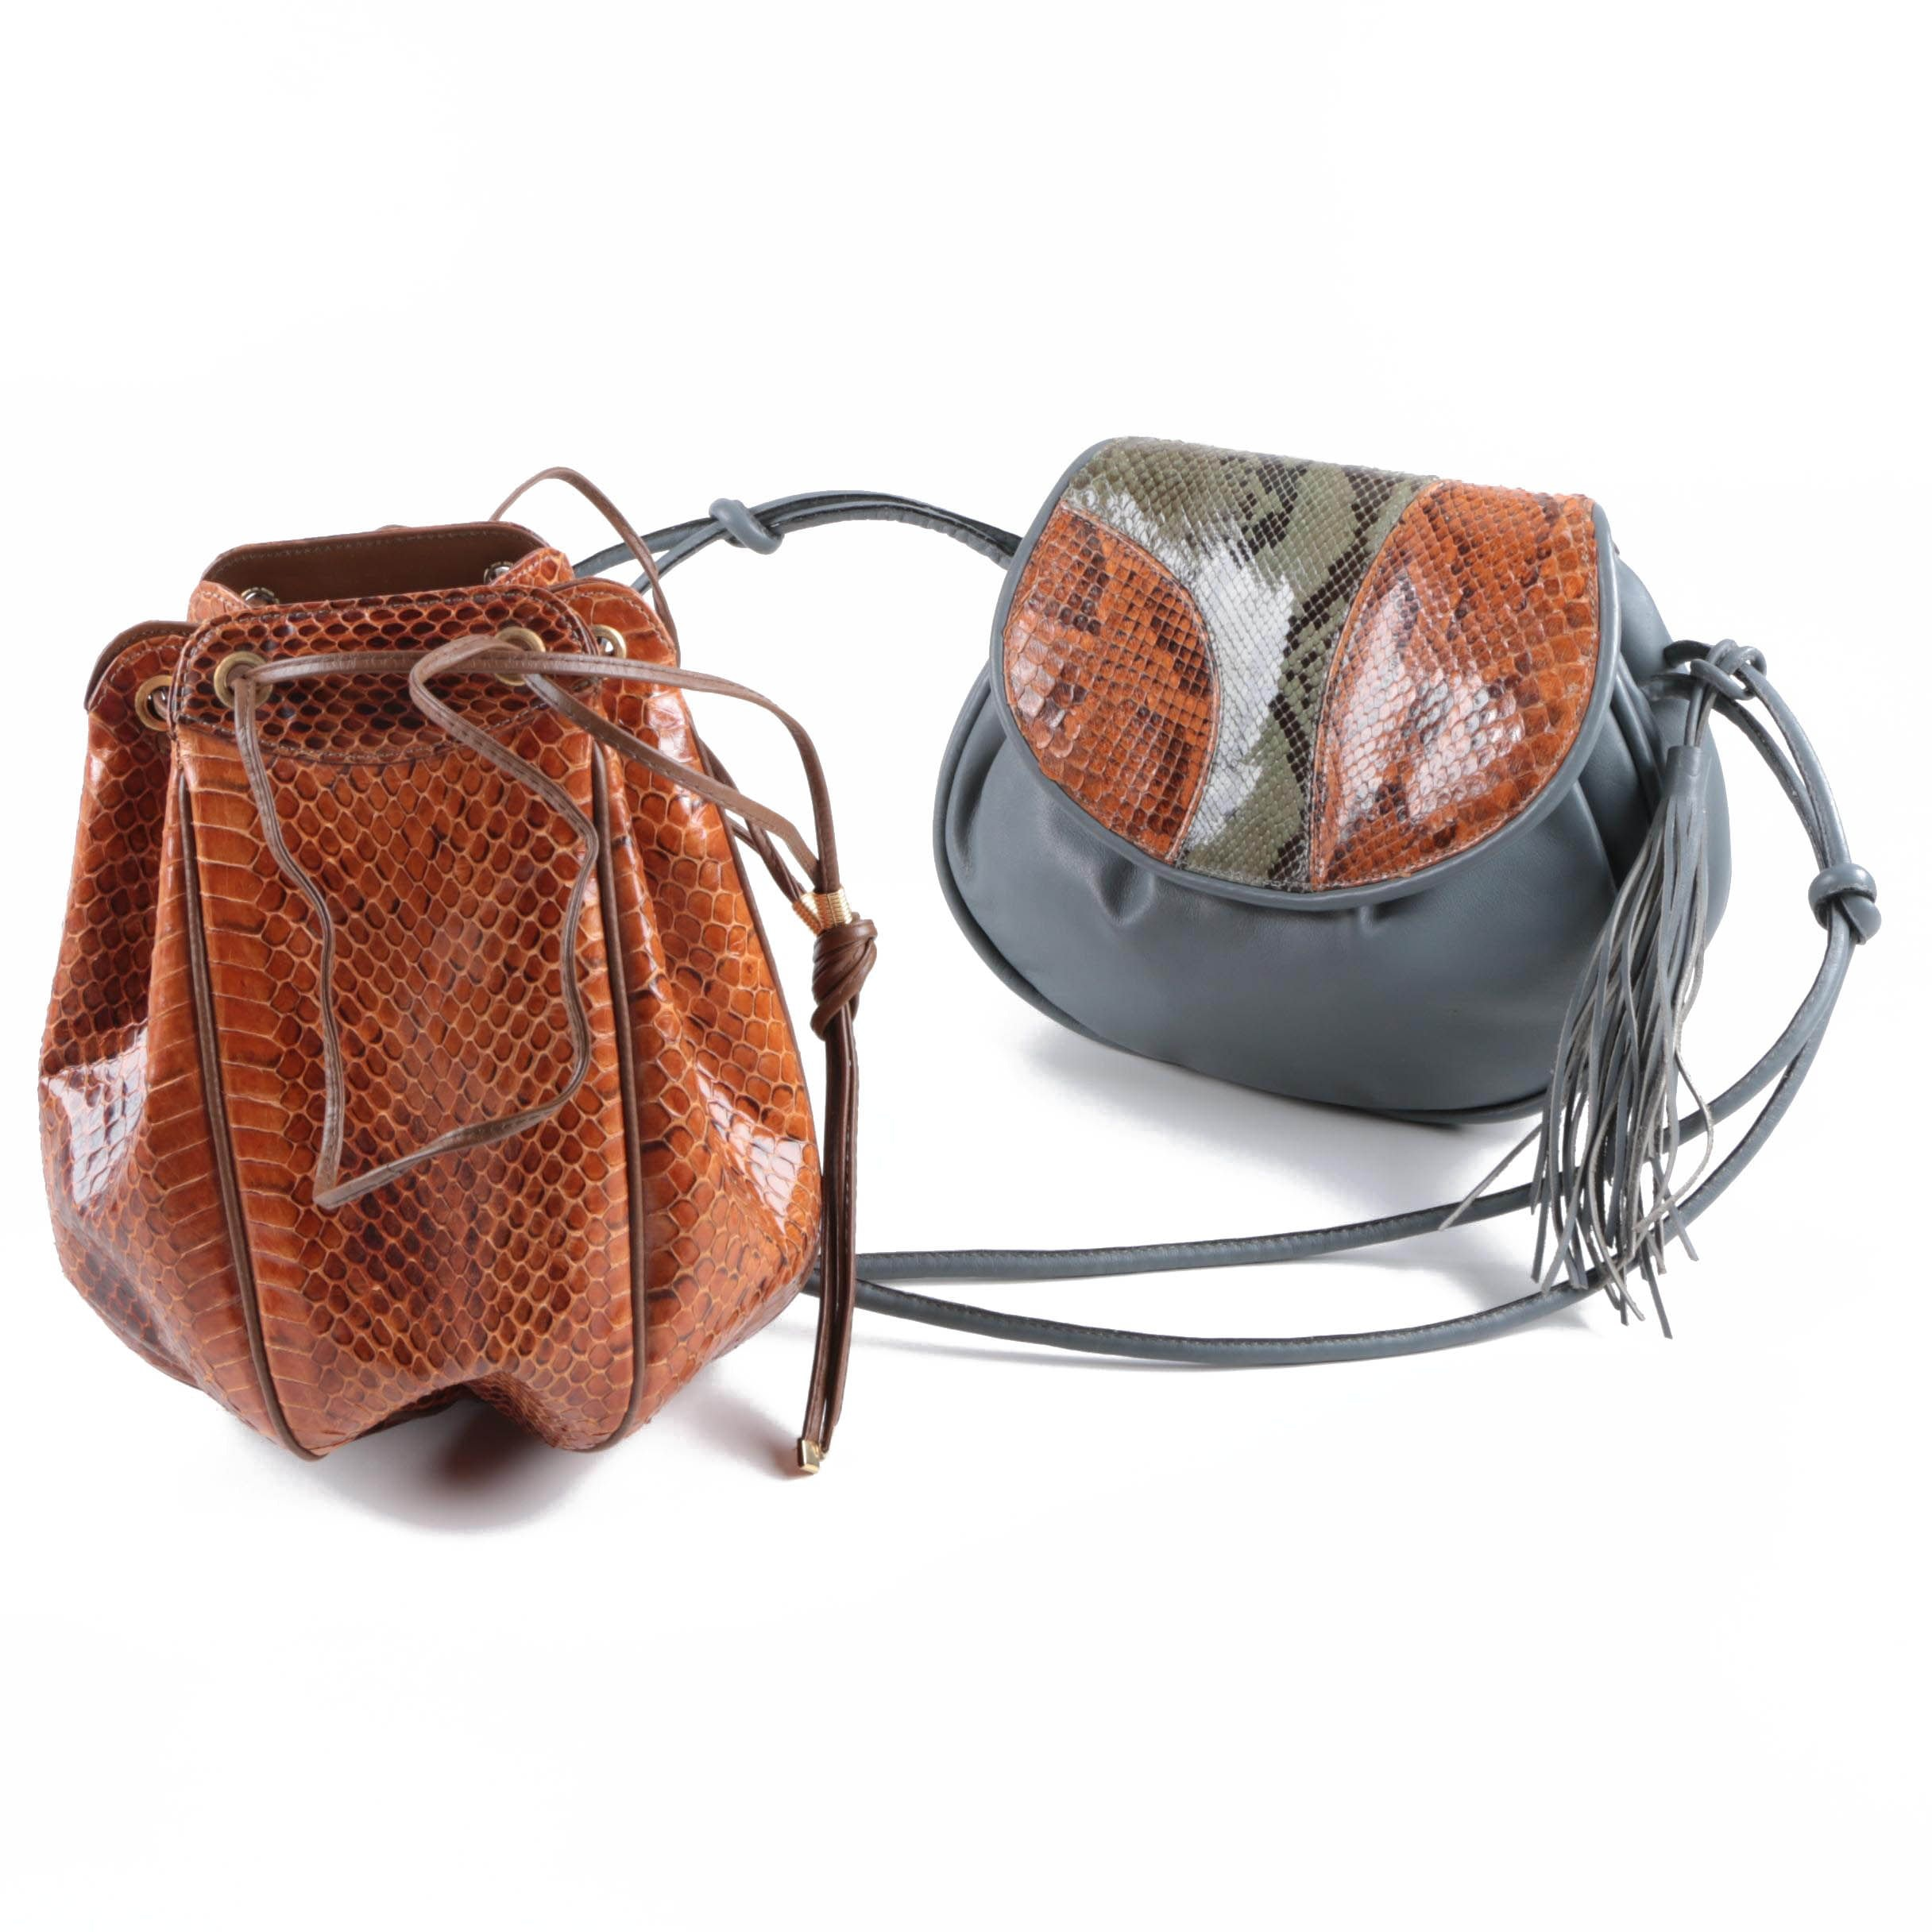 Noblesse Snakeskin and Leather Handbags